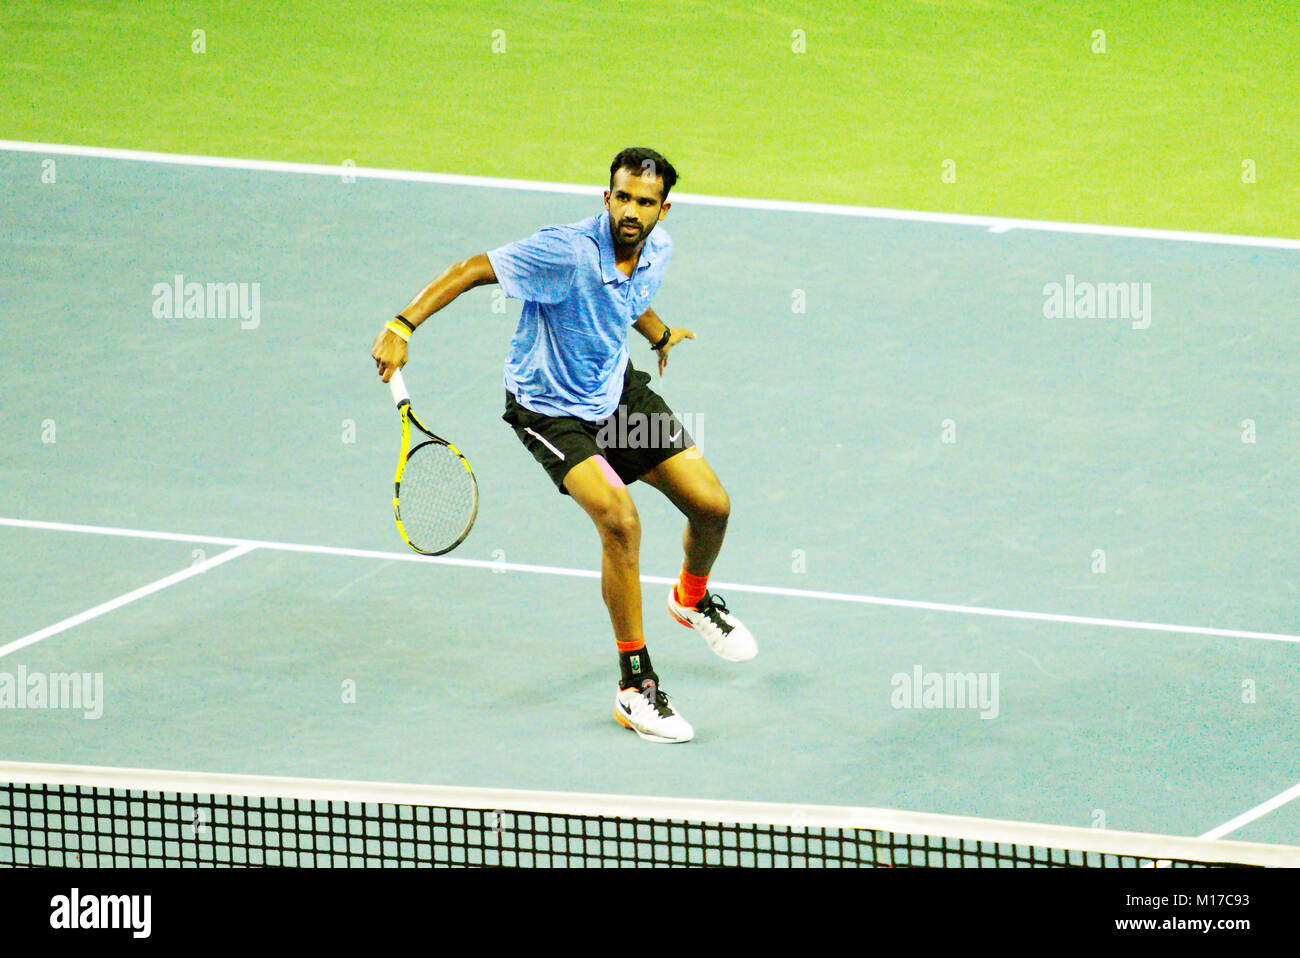 Pune, India. 2nd January 2018. Arjun Kadhe of India, in action in the first round of the Tata Open Maharashtra Tennis - Stock Image